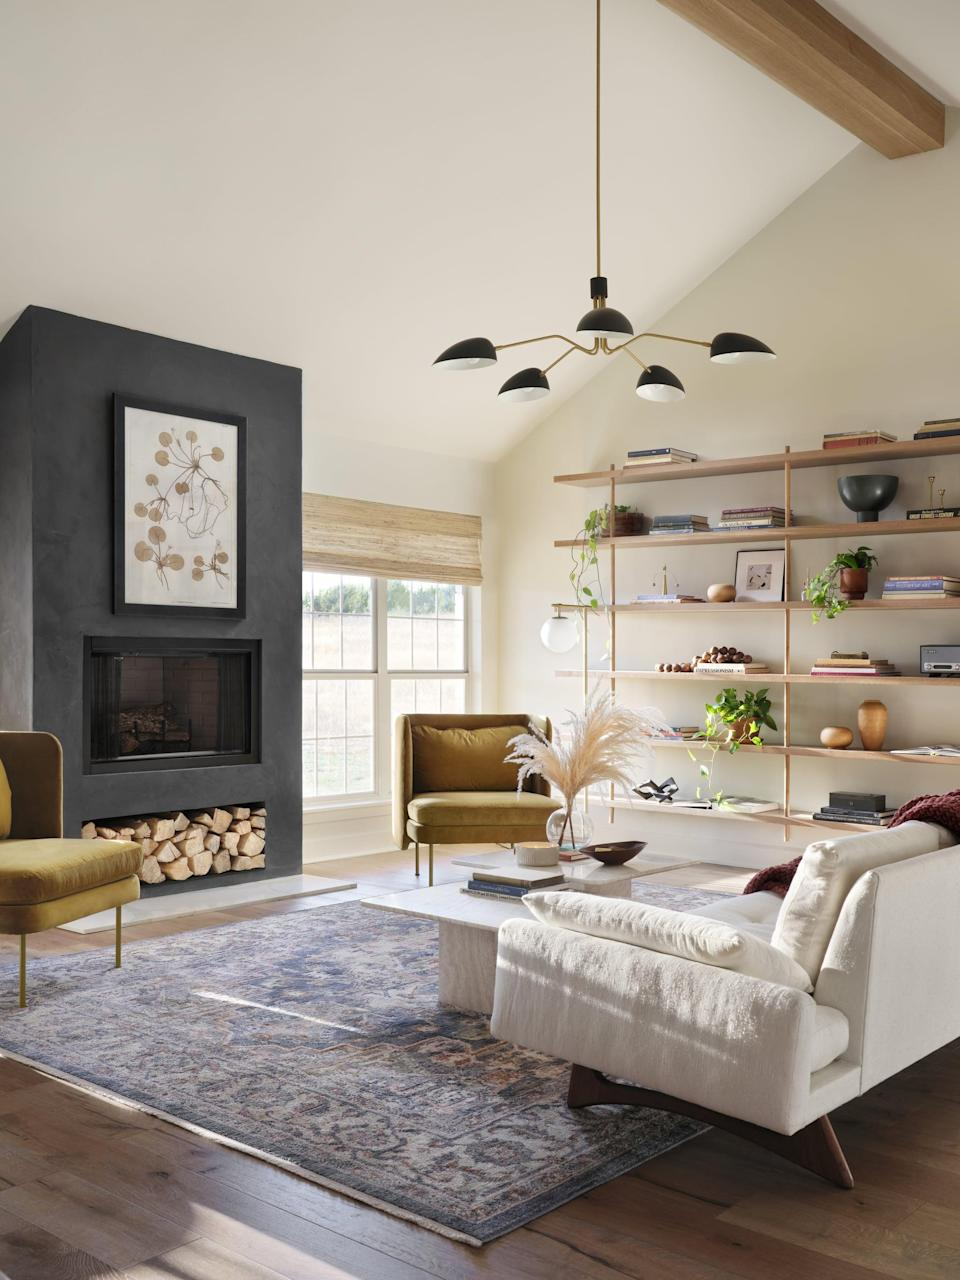 <p>During the reveal, Lucas and Laney could hardly believe this was the same living room. The eyesore fireplace turned into the focal point of the whole room, as Chip and Joanna had resurfaced it in dark plaster to modernize the space and create a contrast with the white walls.</p>